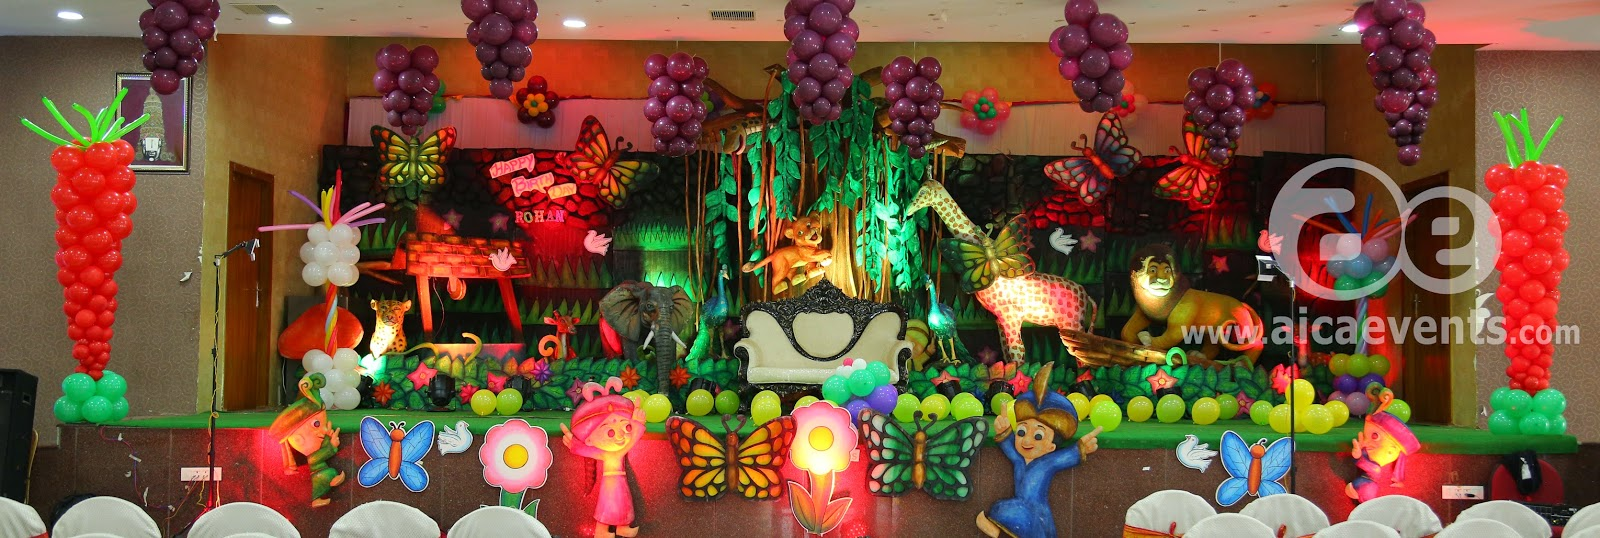 Jungle Birthday Party Decorating Ideas Image Inspiration of Cake